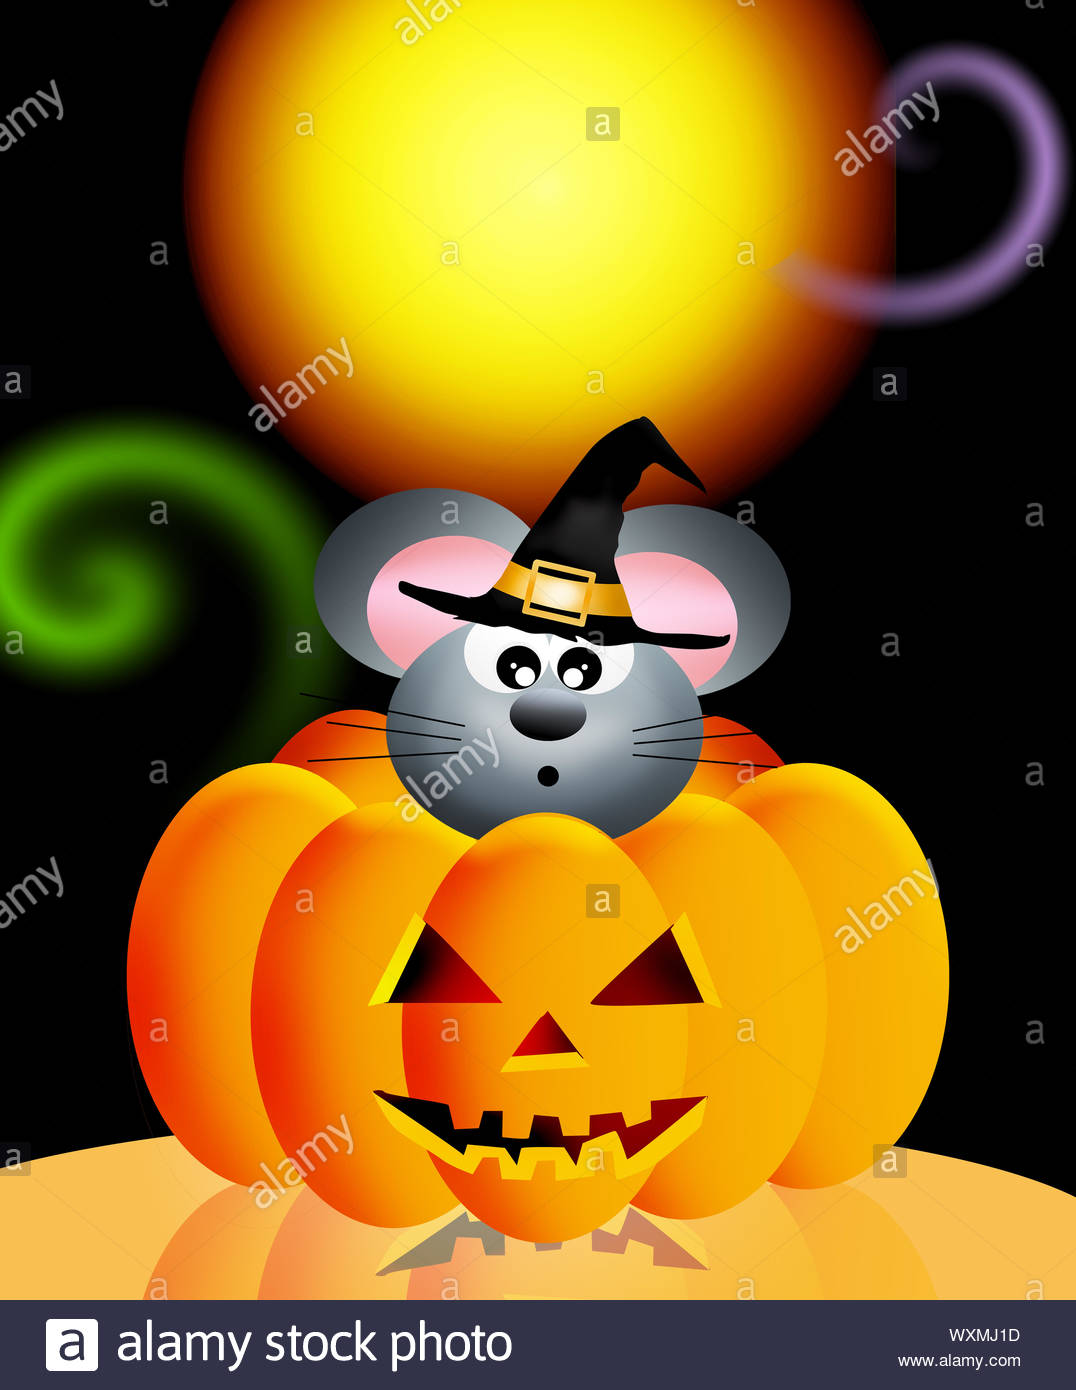 mouse in the pumpkin WXMJ1D